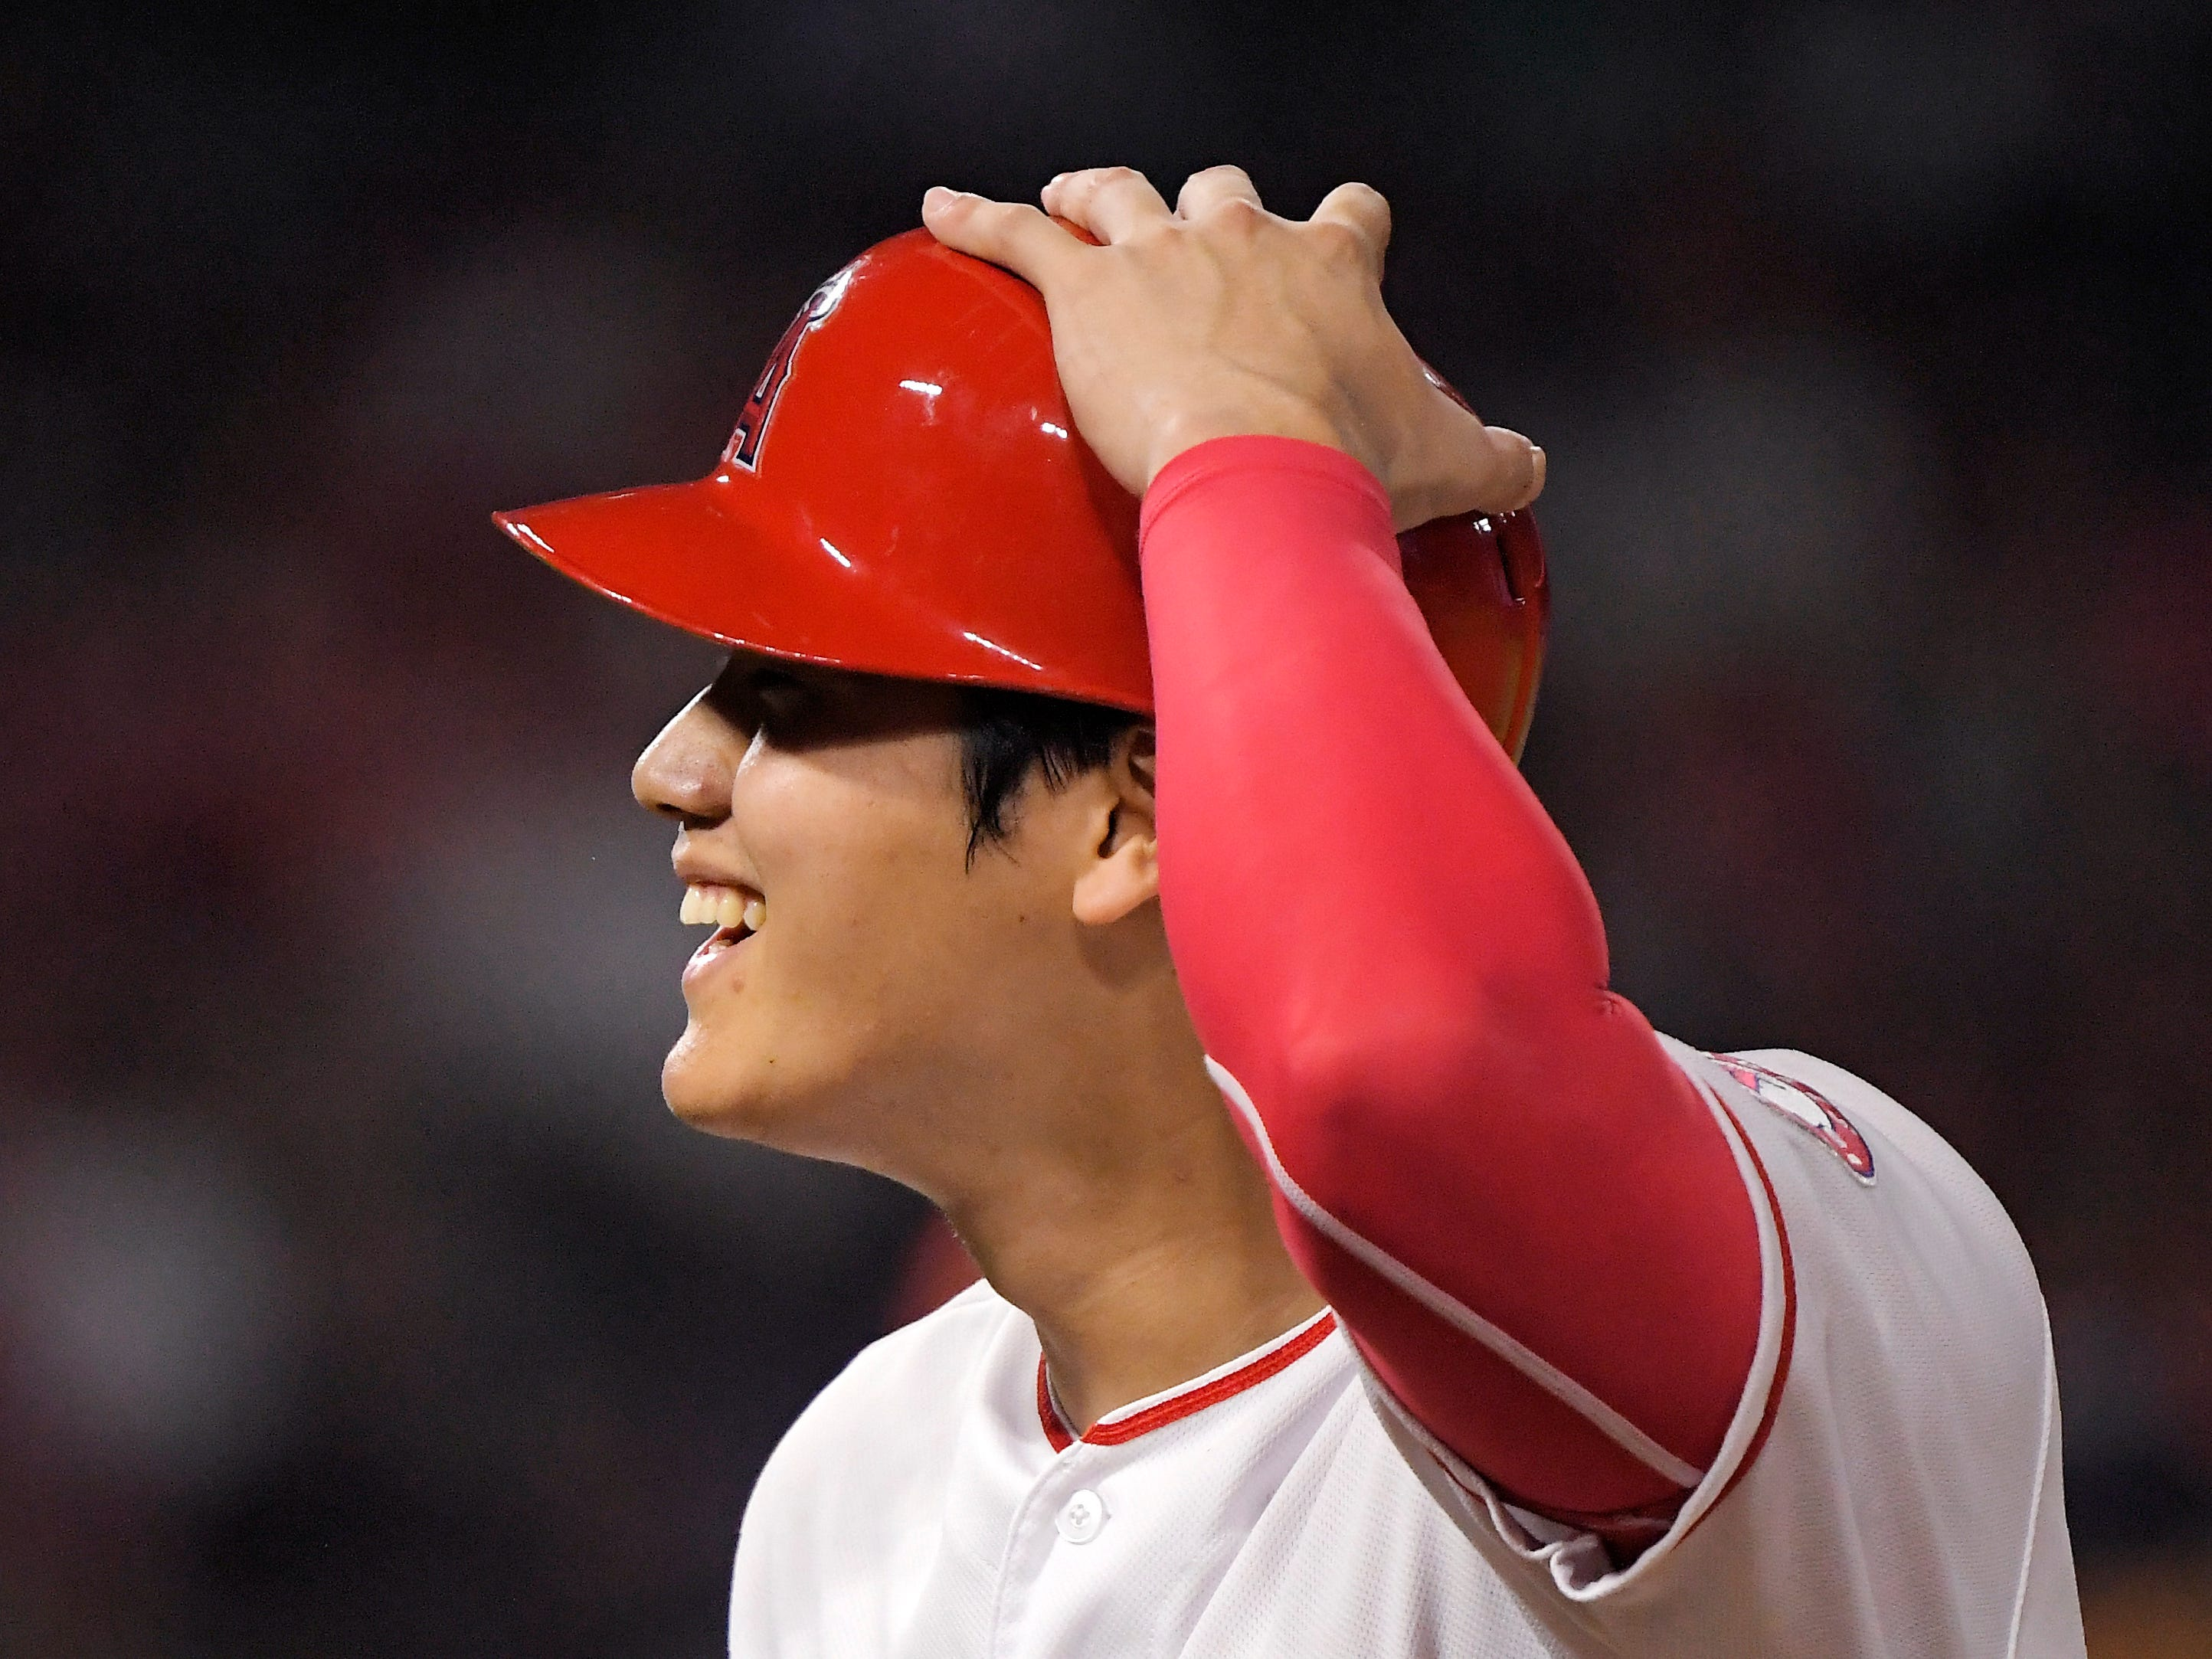 Los Angeles Angels' Shohei Ohtani, of Japan, smiles after being intentionally walked during the sixth inning.